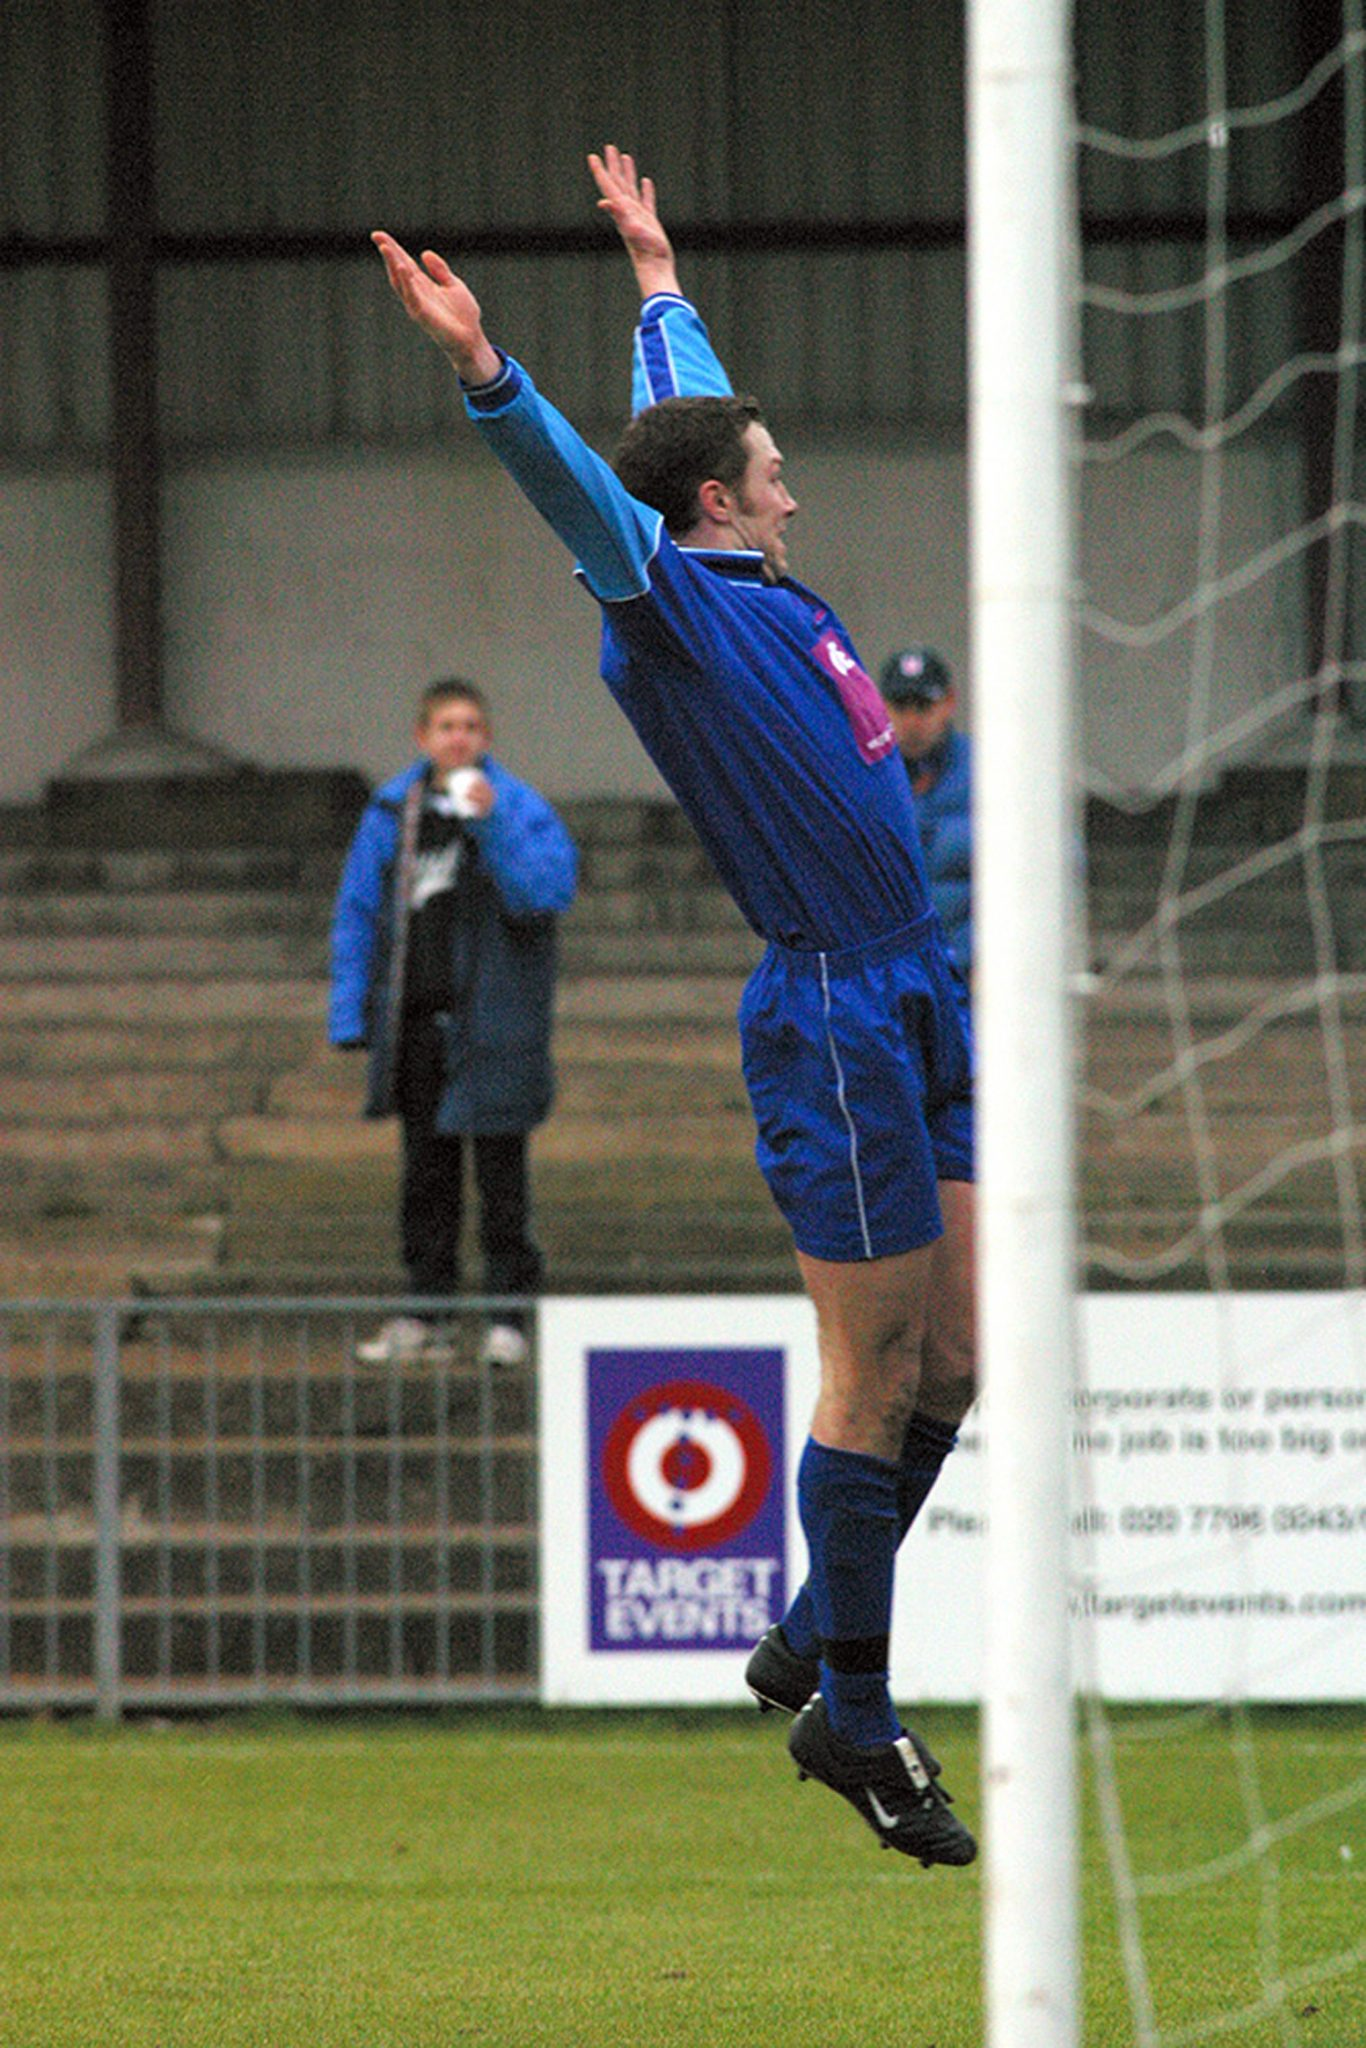 Jon Palmer celebrates scoring for Bracknell Town against Carshalton Athletic - circa 2002. Photo: Richard Claypole.